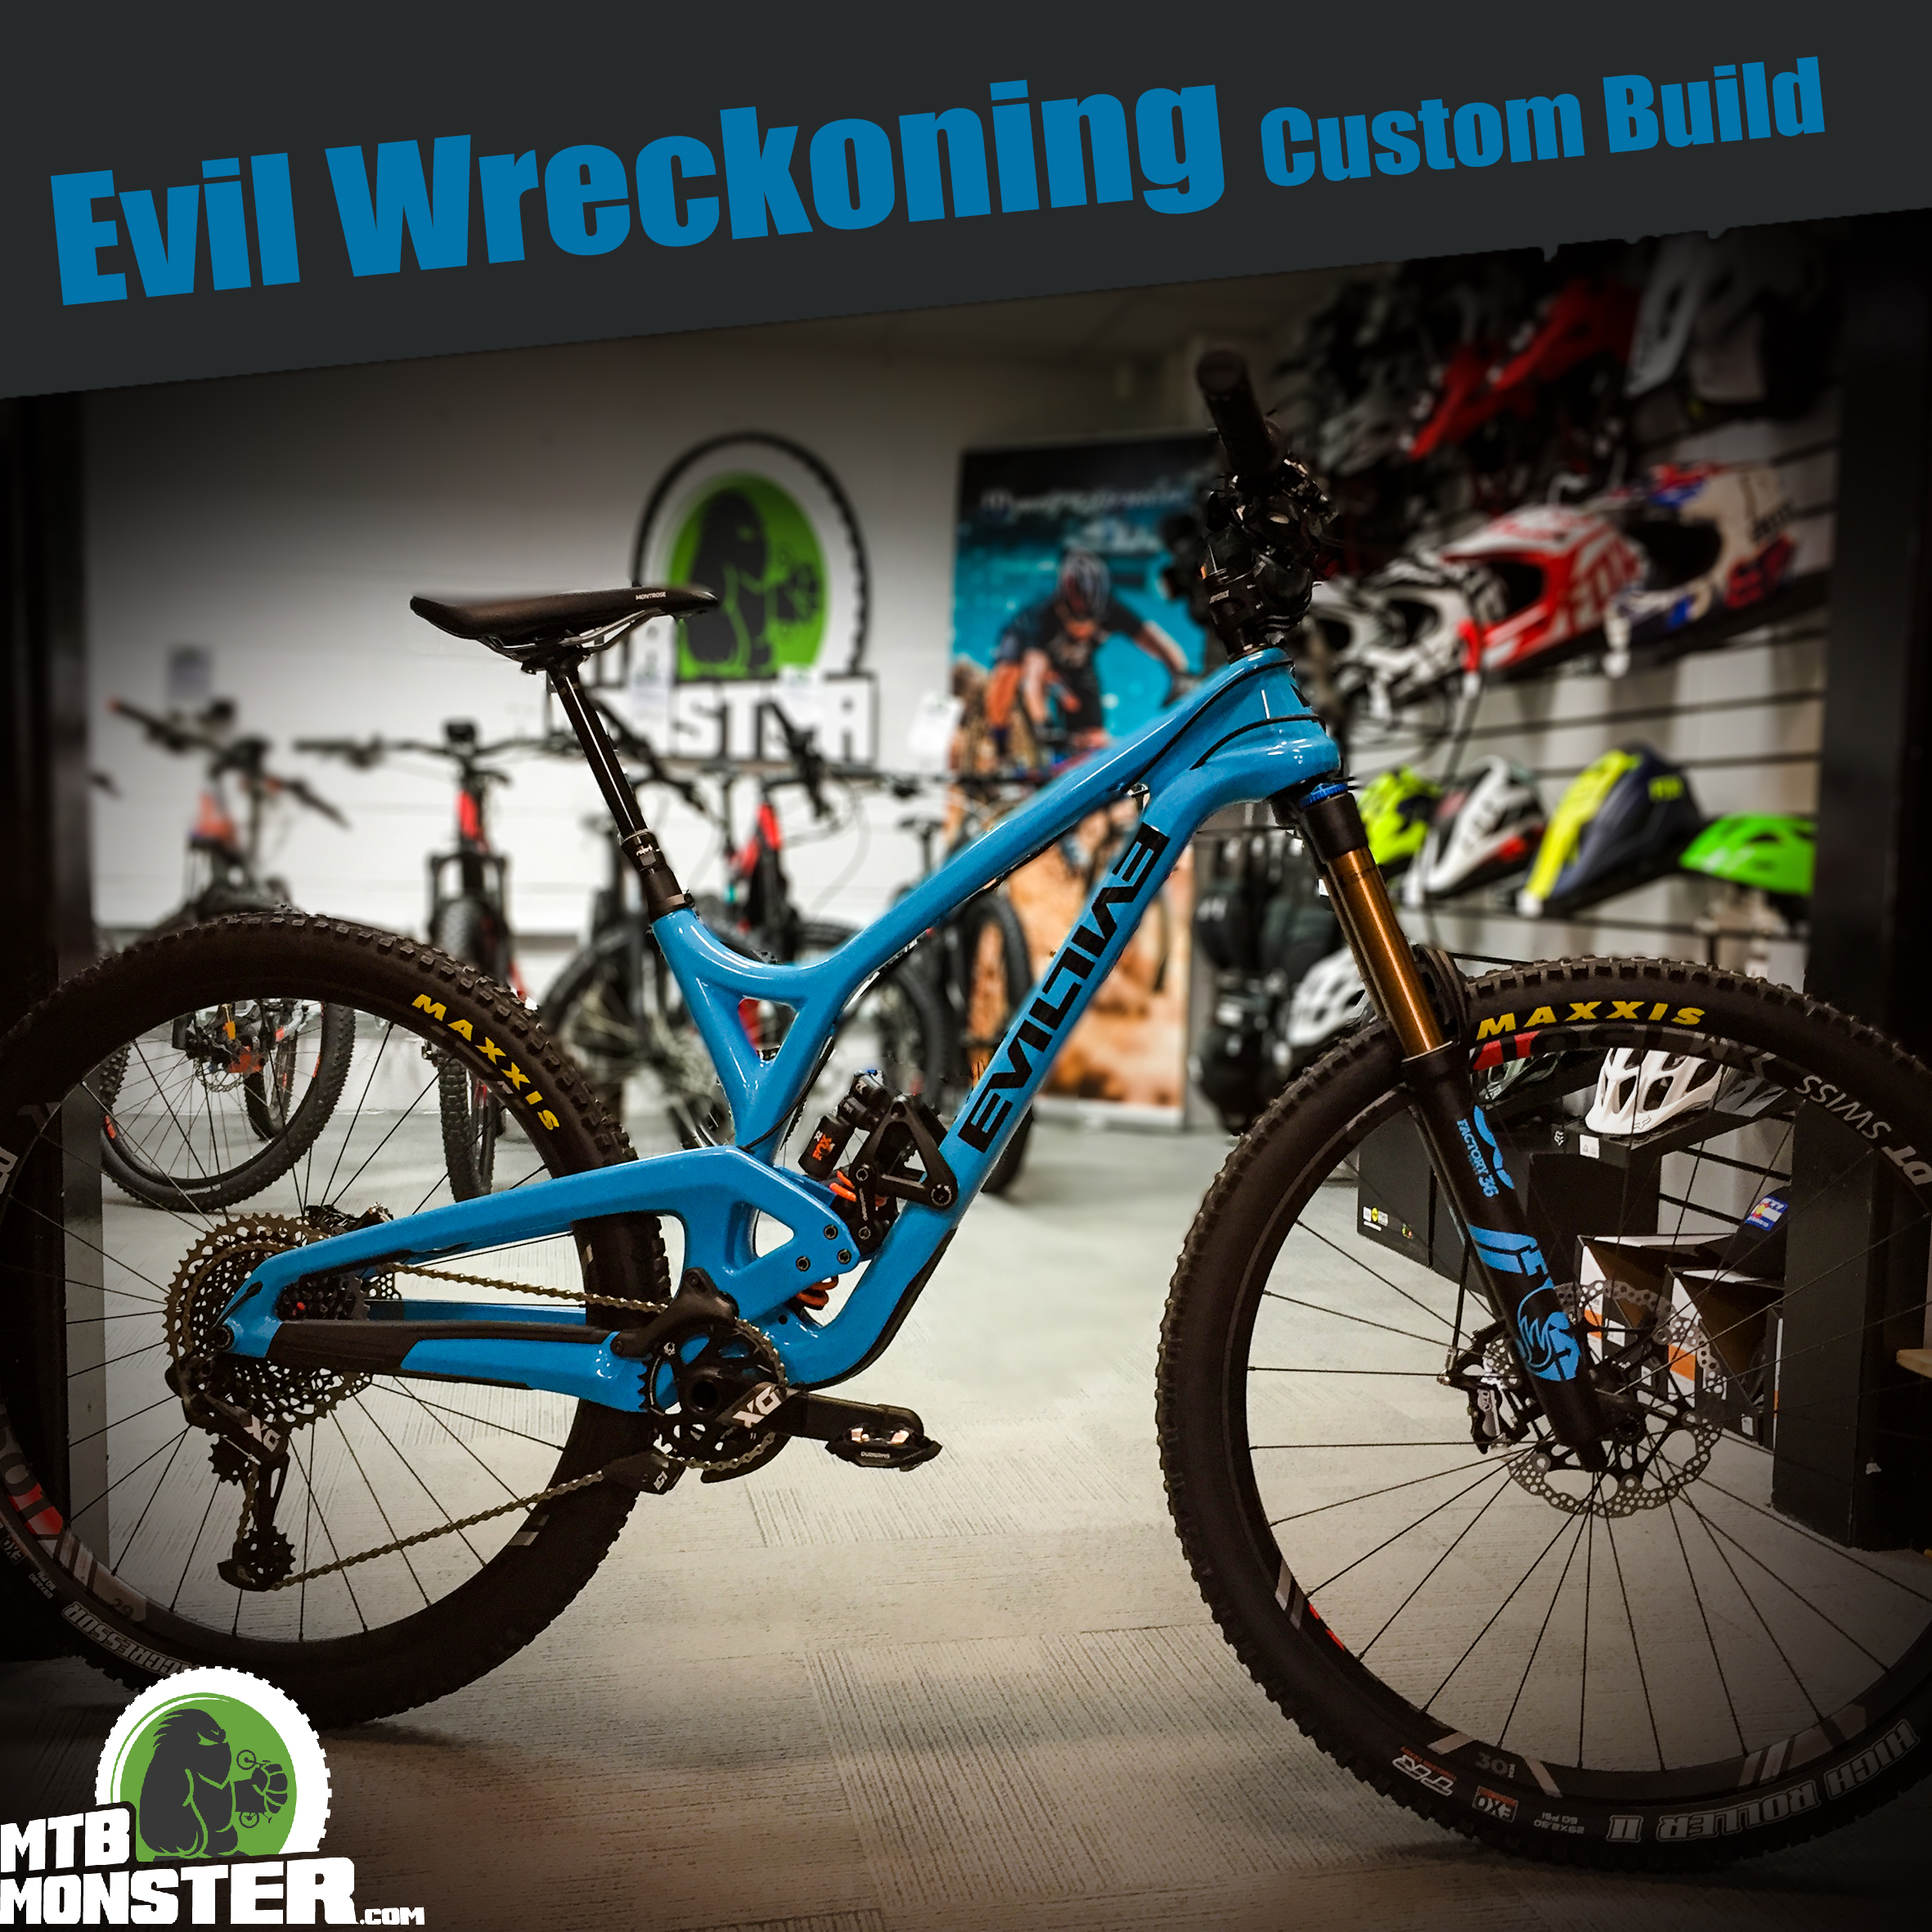 evilwreckoning-custom-build-by-mtb-monster.jpg